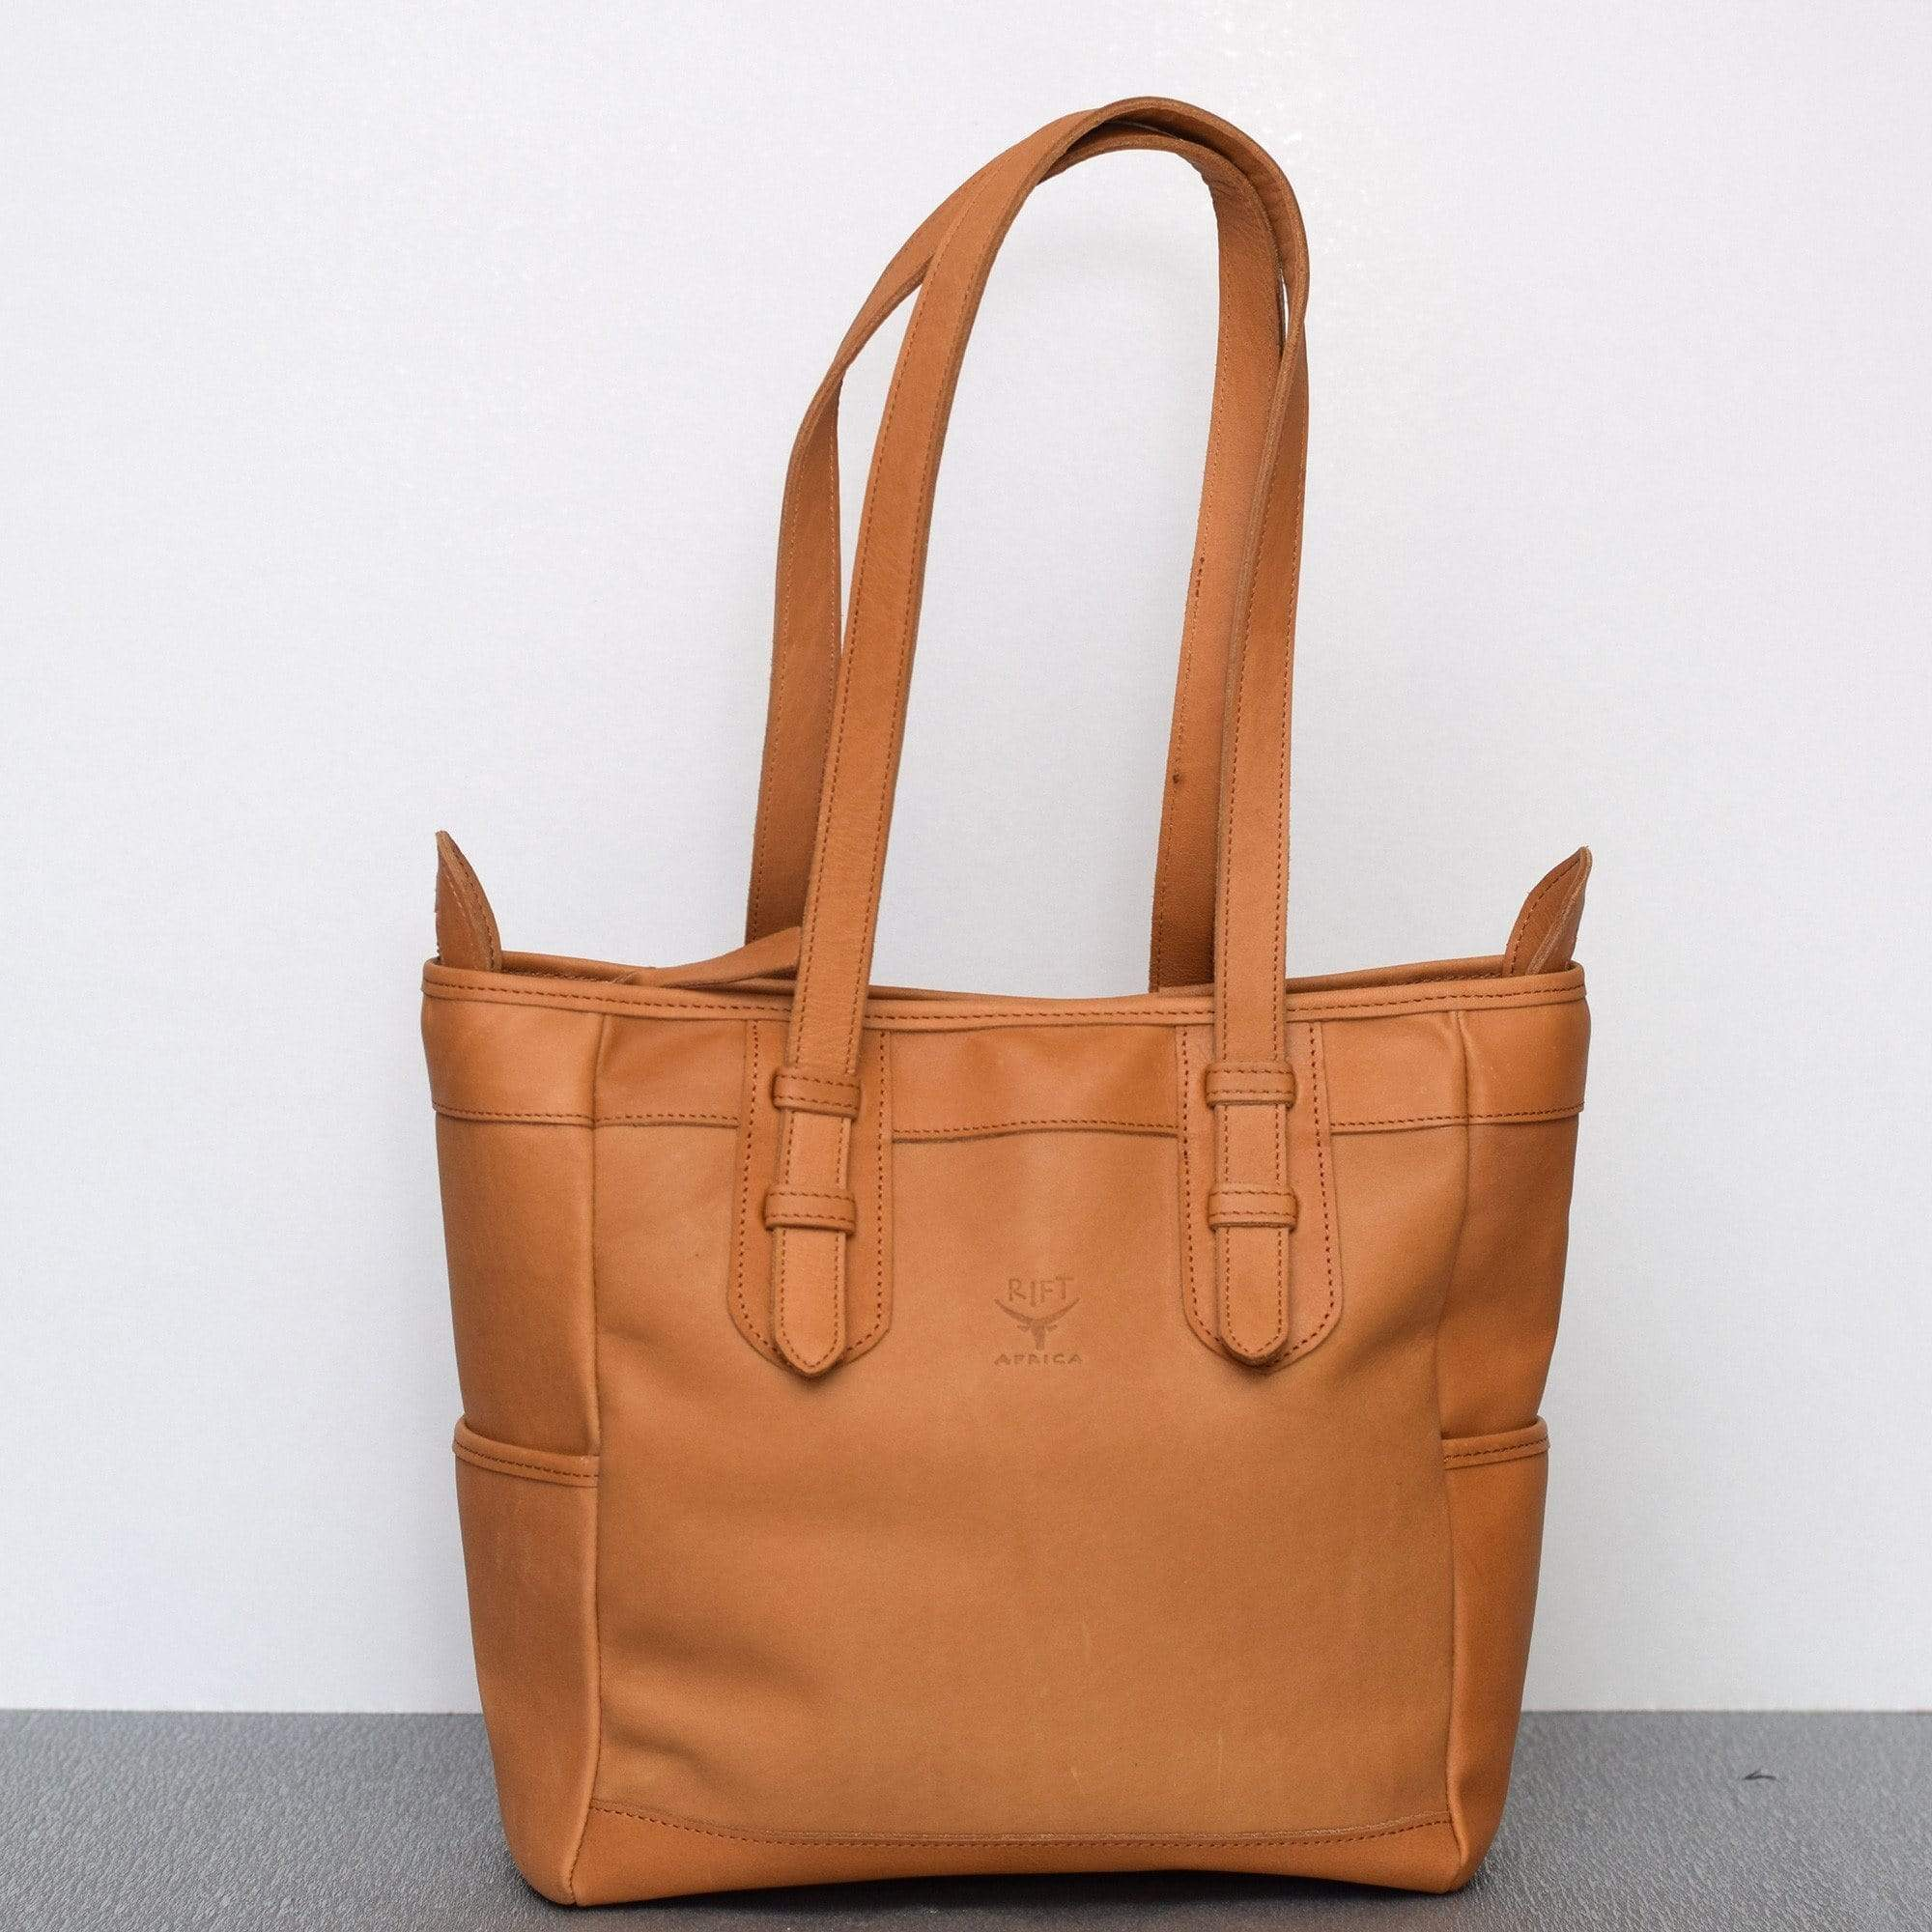 Mandy Tan Leather Tote Bag